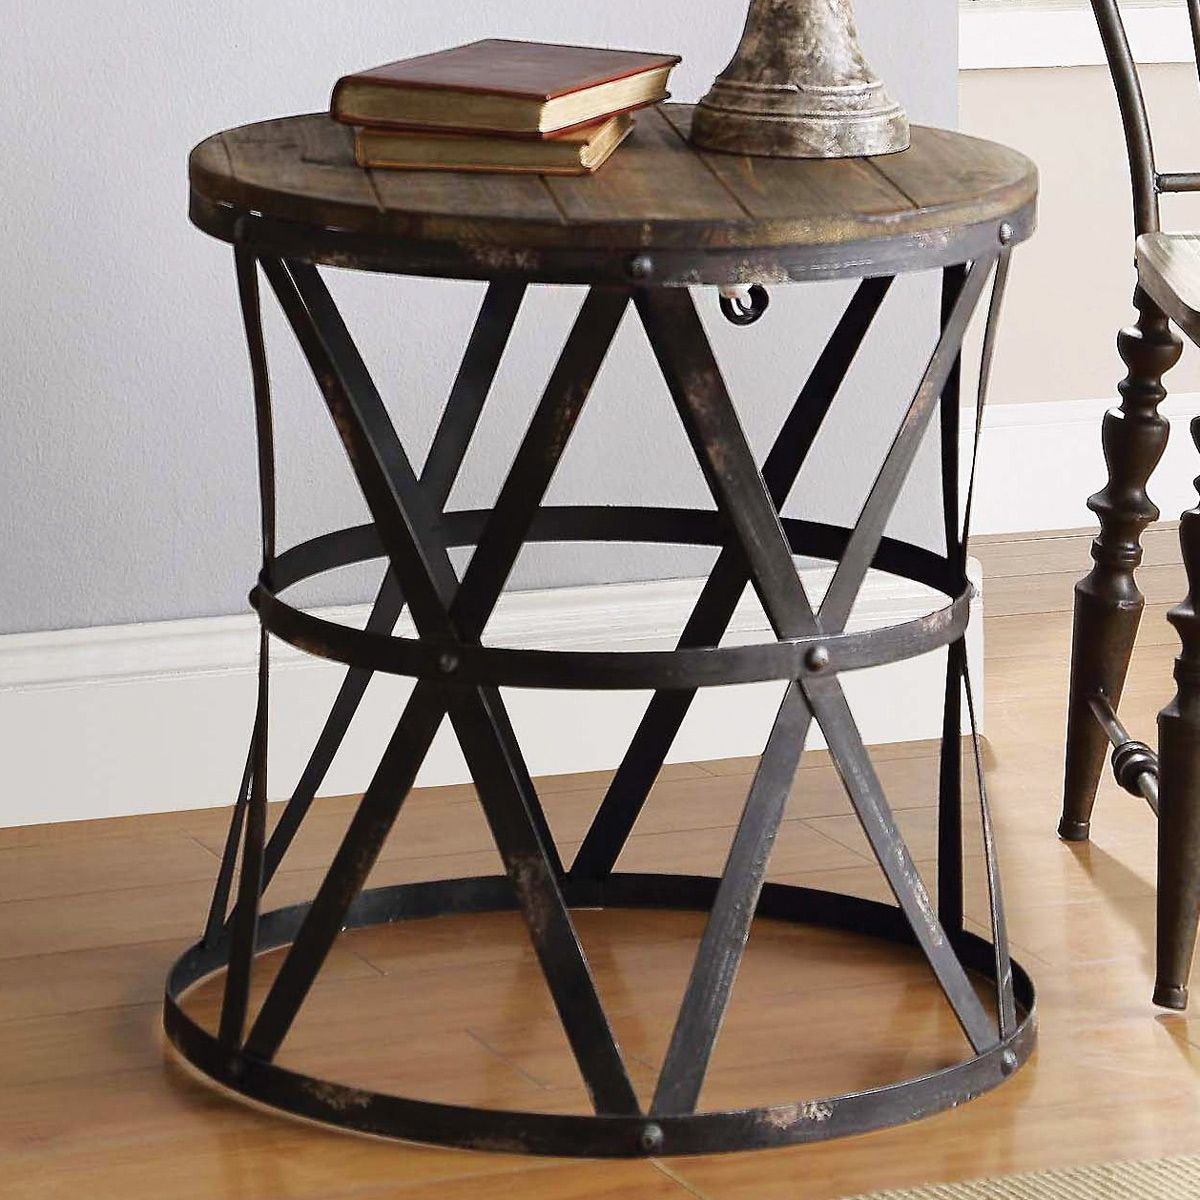 rustic modern side table dream home whatnots industrial metal coffee tables and end black forest decor square wood versailles sofa furniture high point usa lamp size under window